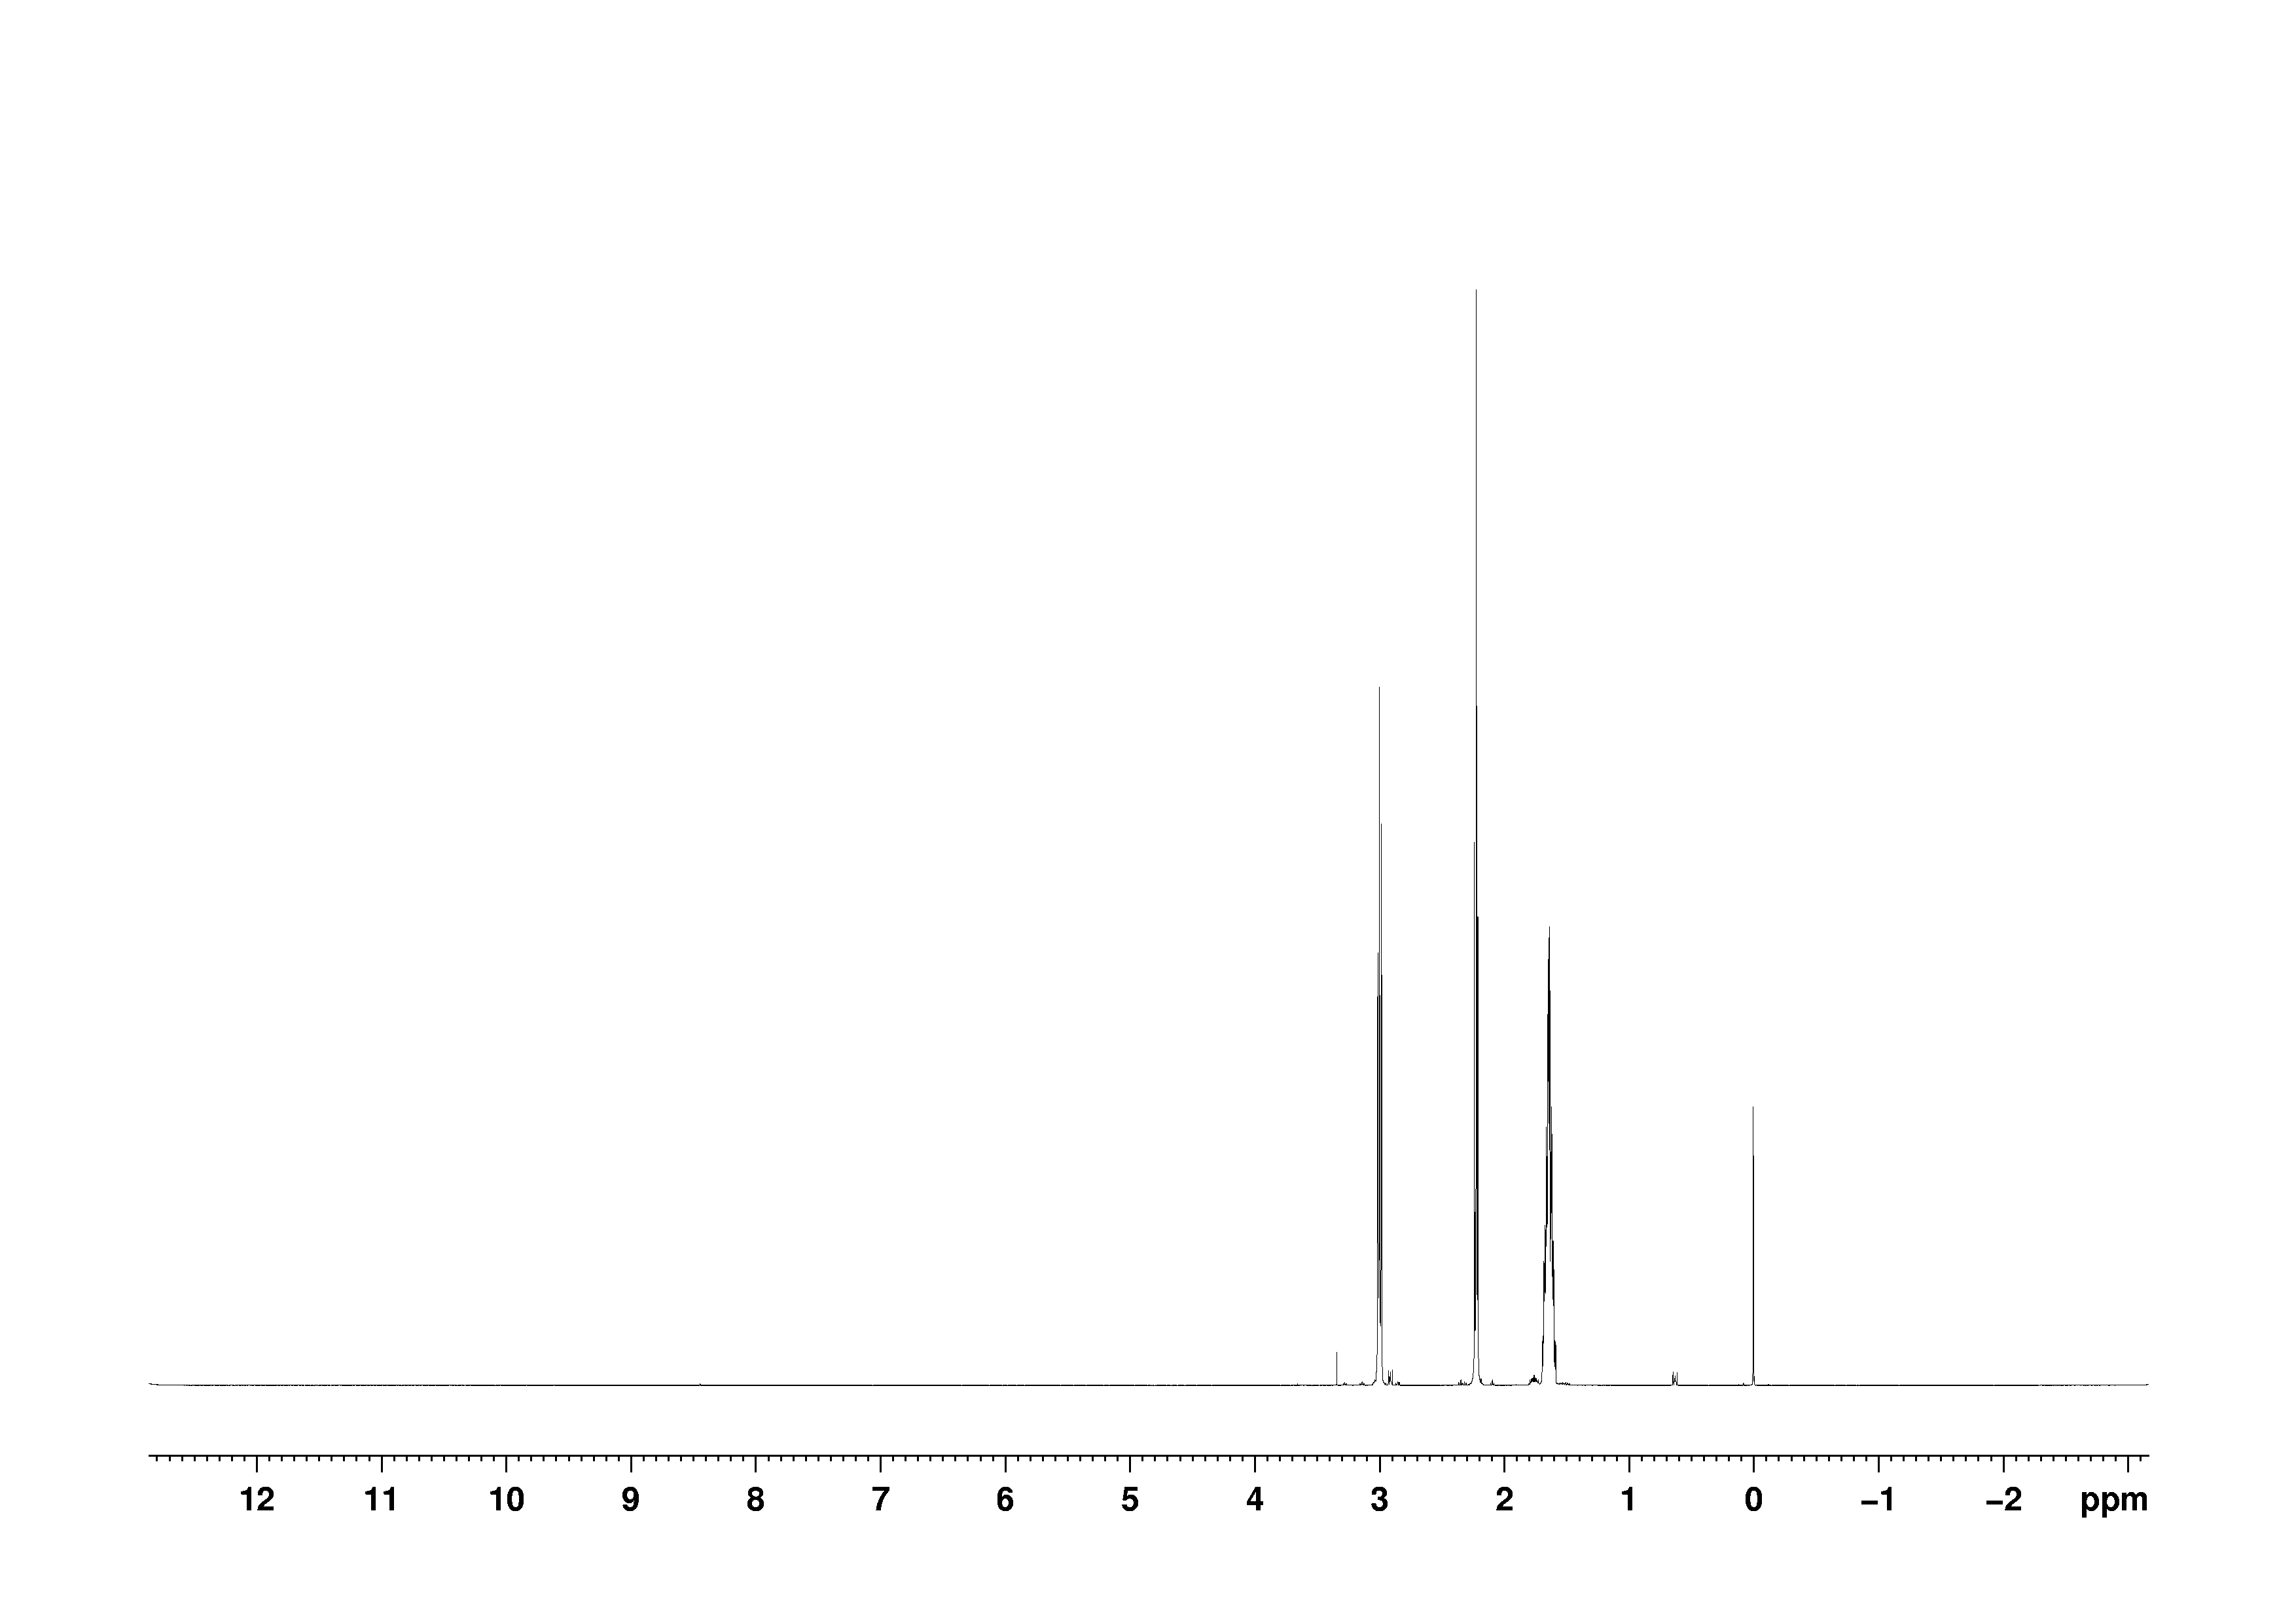 1D 1H, 7.4 spectrum for 5-Aminovaleric acid